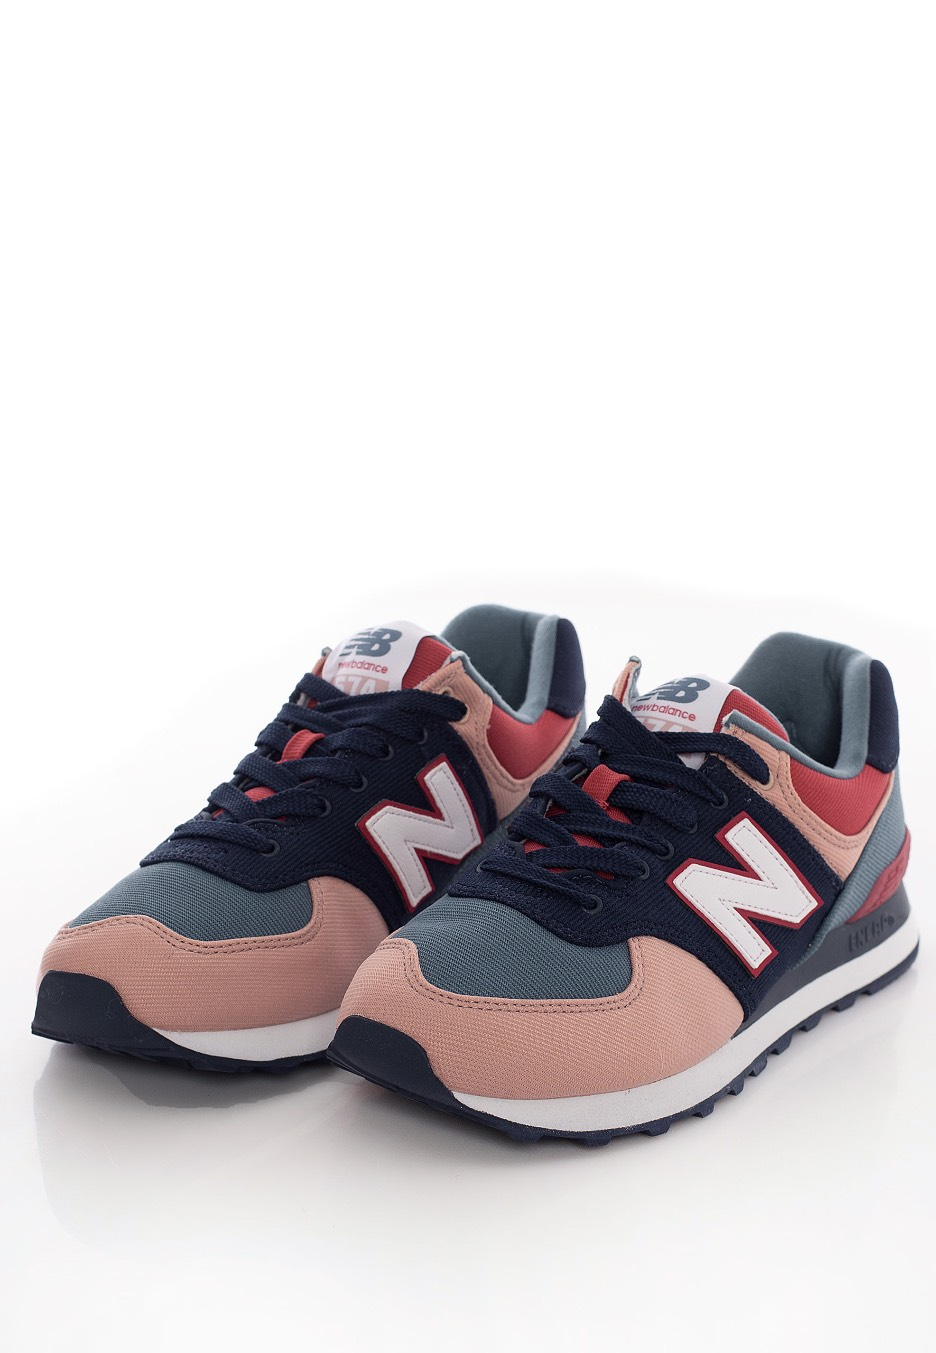 newest d35b3 4af60 newbalance wl574ina lightpetrol girlshoes side lg 1.jpg